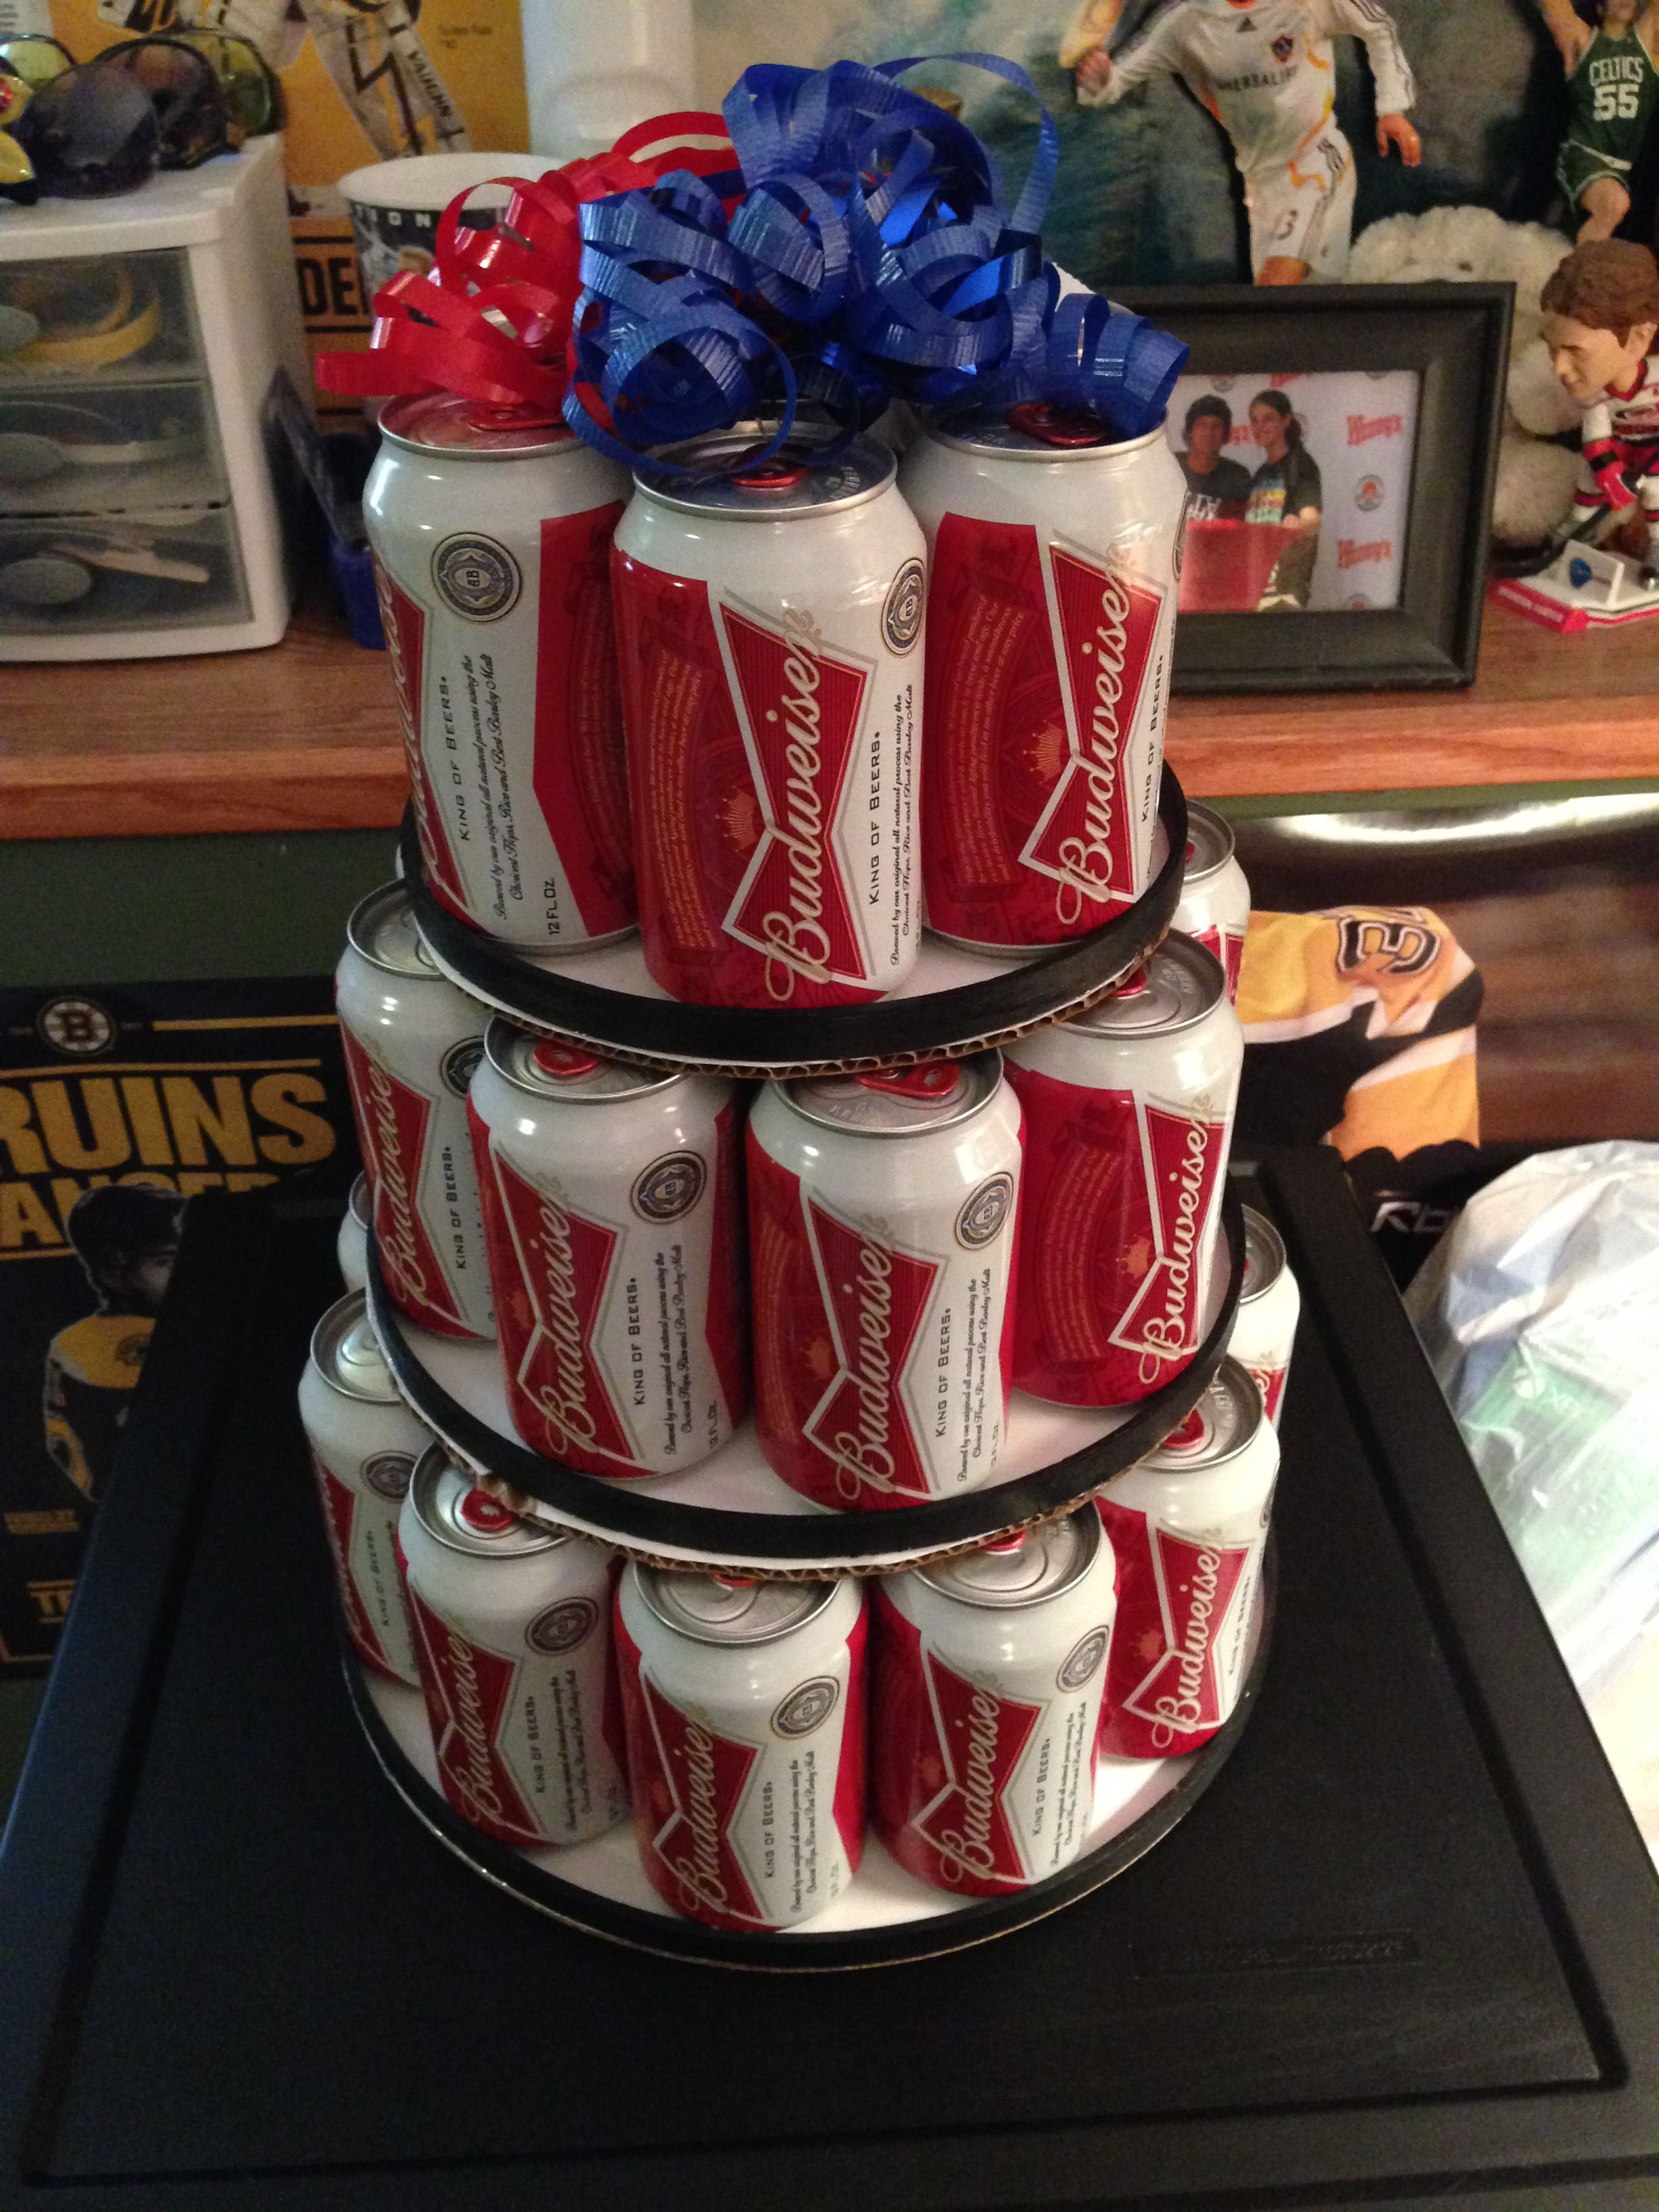 So getting this for him birthday beer cake birthday cake